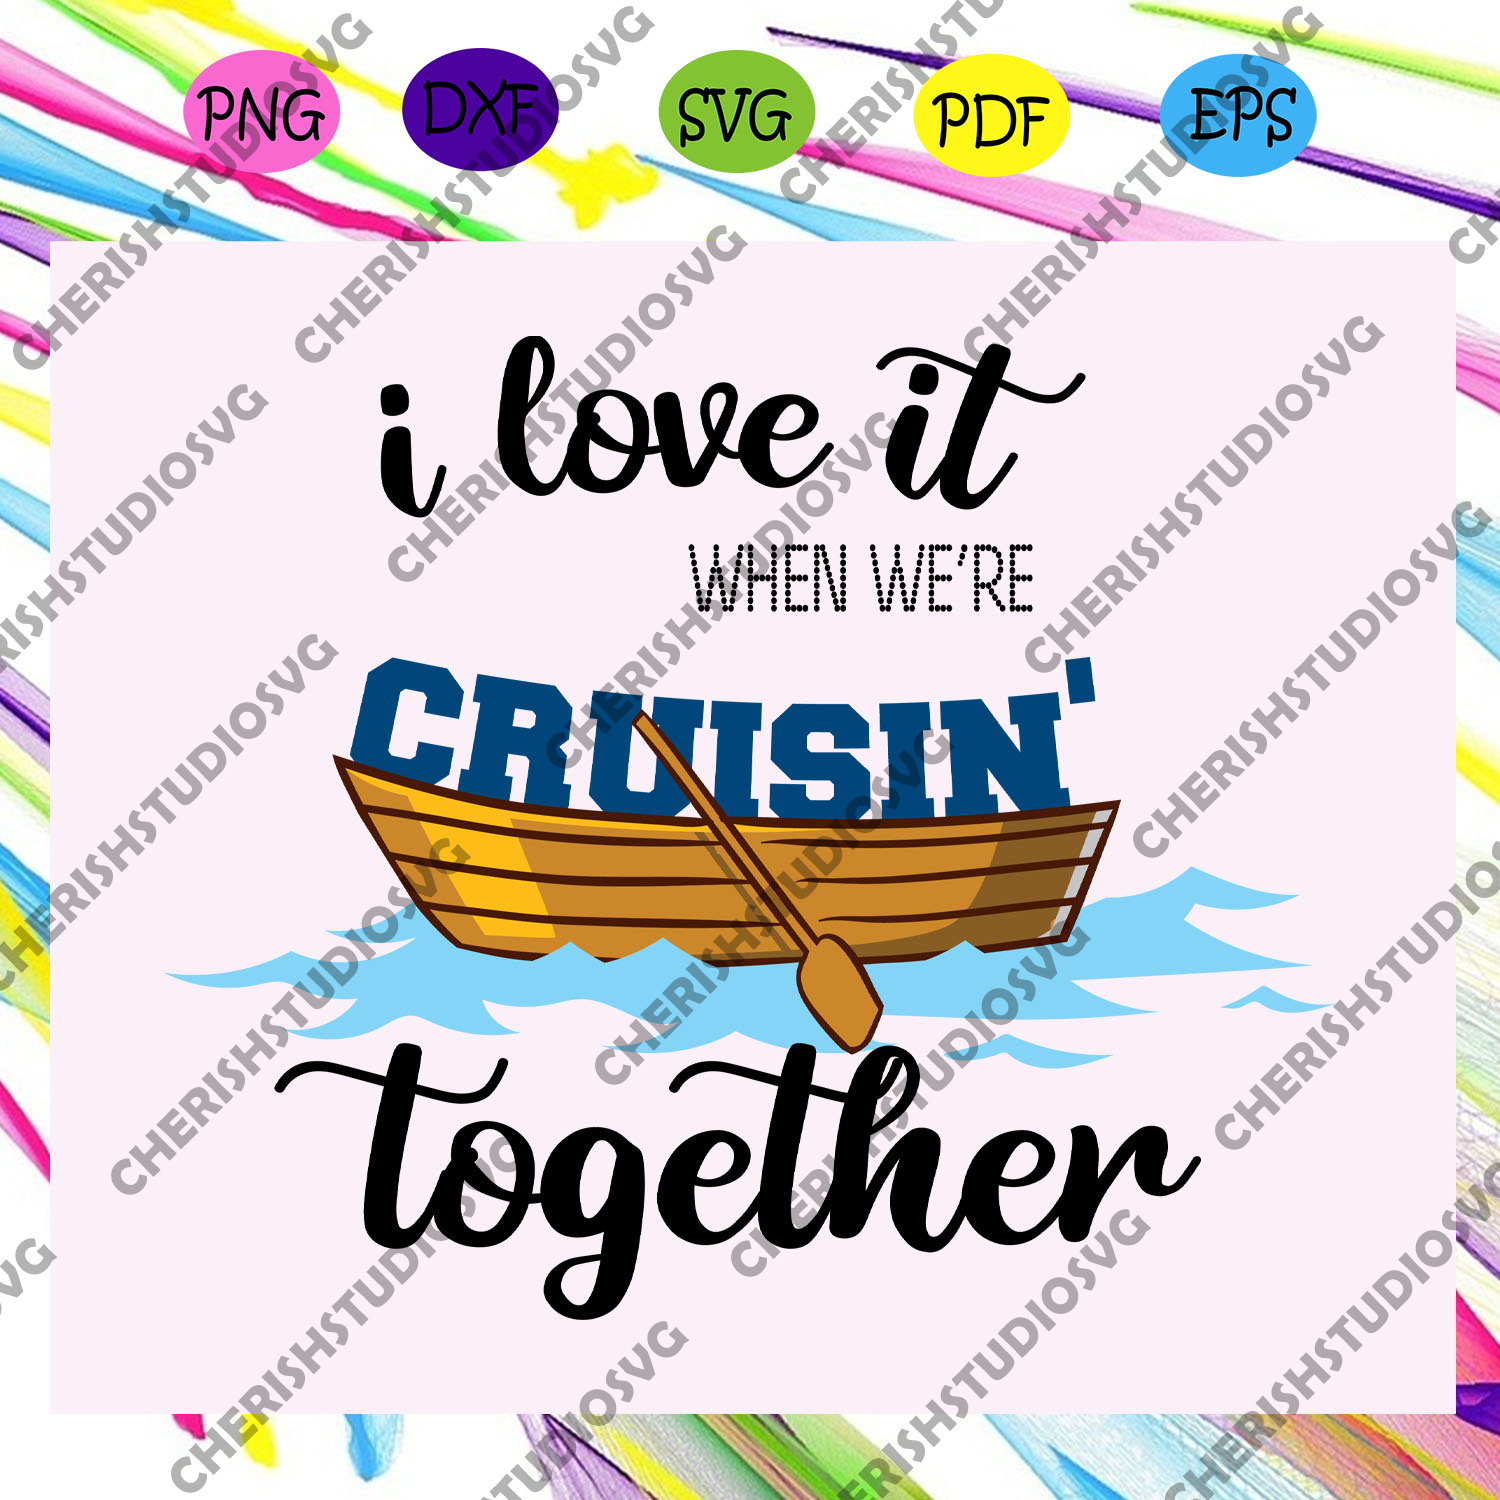 I love it when we're cruisin' together, cruise, cruise svg, cruise ship, cruise ship svg, family cruise, cruise life, vacation cruise, hello summer, summer svg, Files For Silhouette, Files For Cricut, SVG, DXF, EPS, PNG, Instant Download